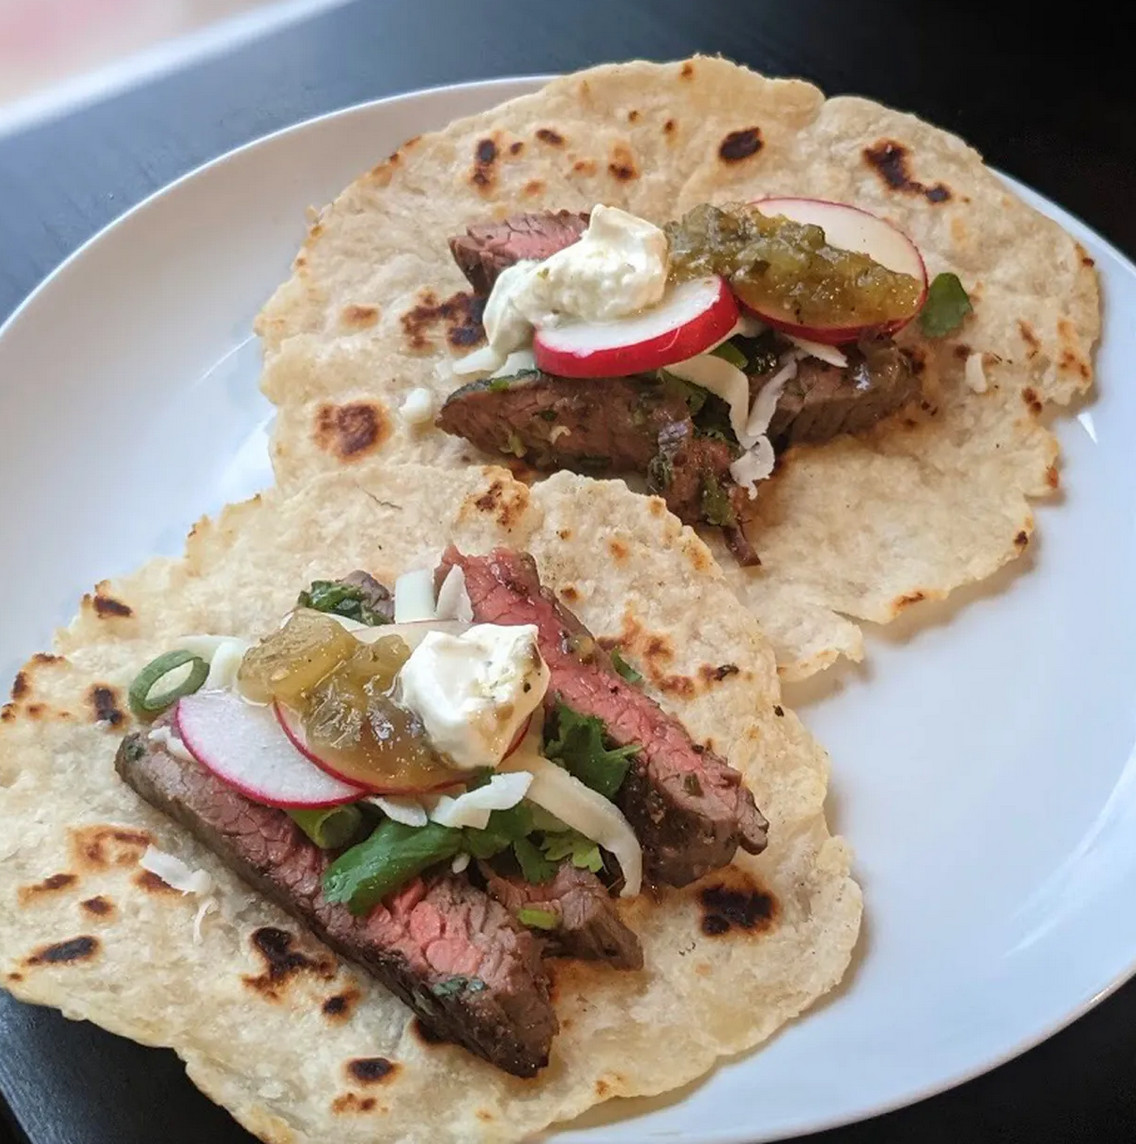 Two steak tacos with flour tortillas, sitting on a white plate.